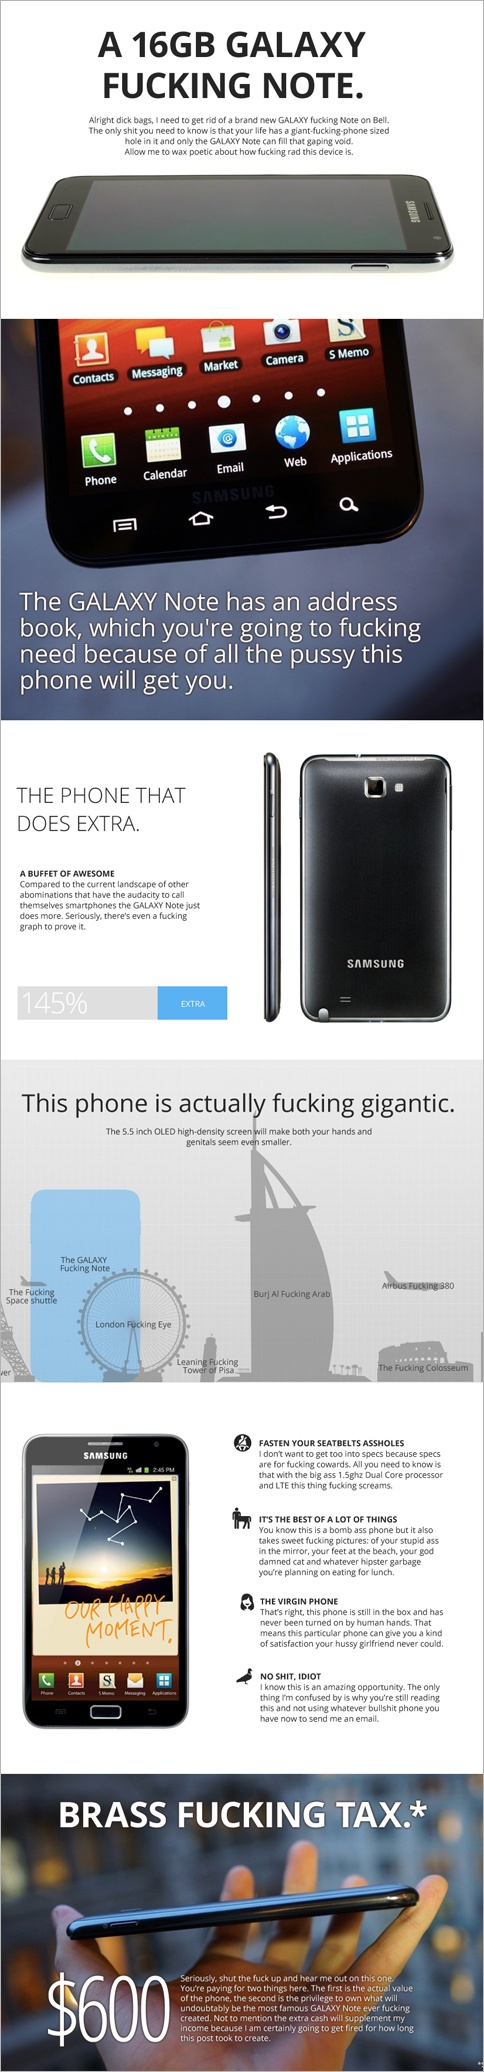 Best Craigslist Post Ever, for a Used Samsung Galaxy Note, Actually Isn't | Adweek